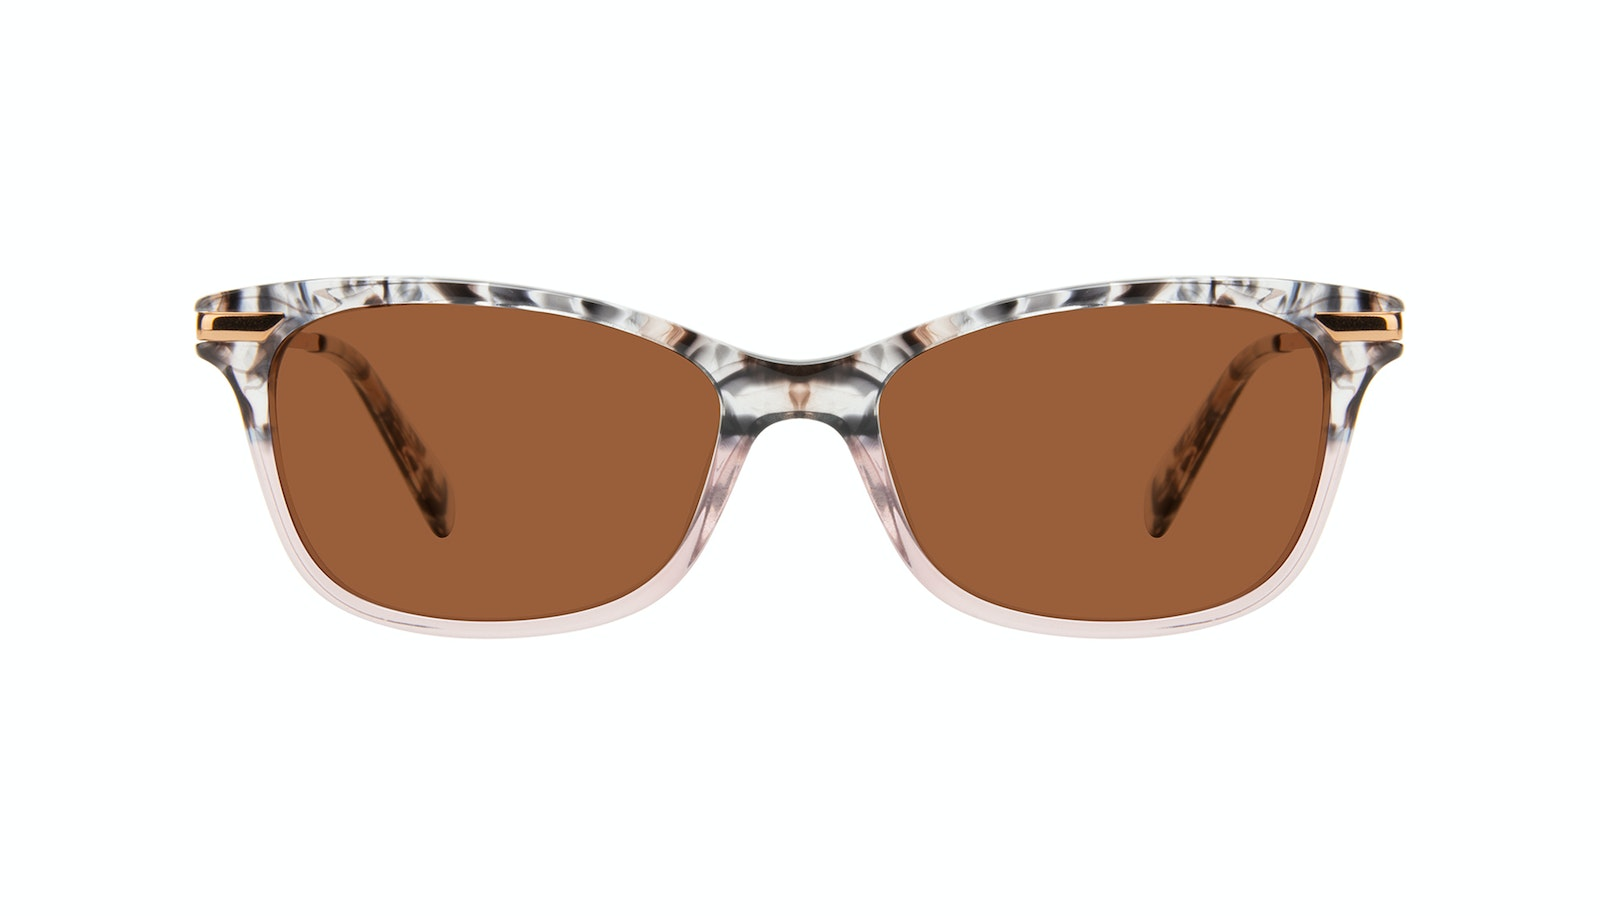 Affordable Fashion Glasses Rectangle Sunglasses Women Comet II Carbone Pink